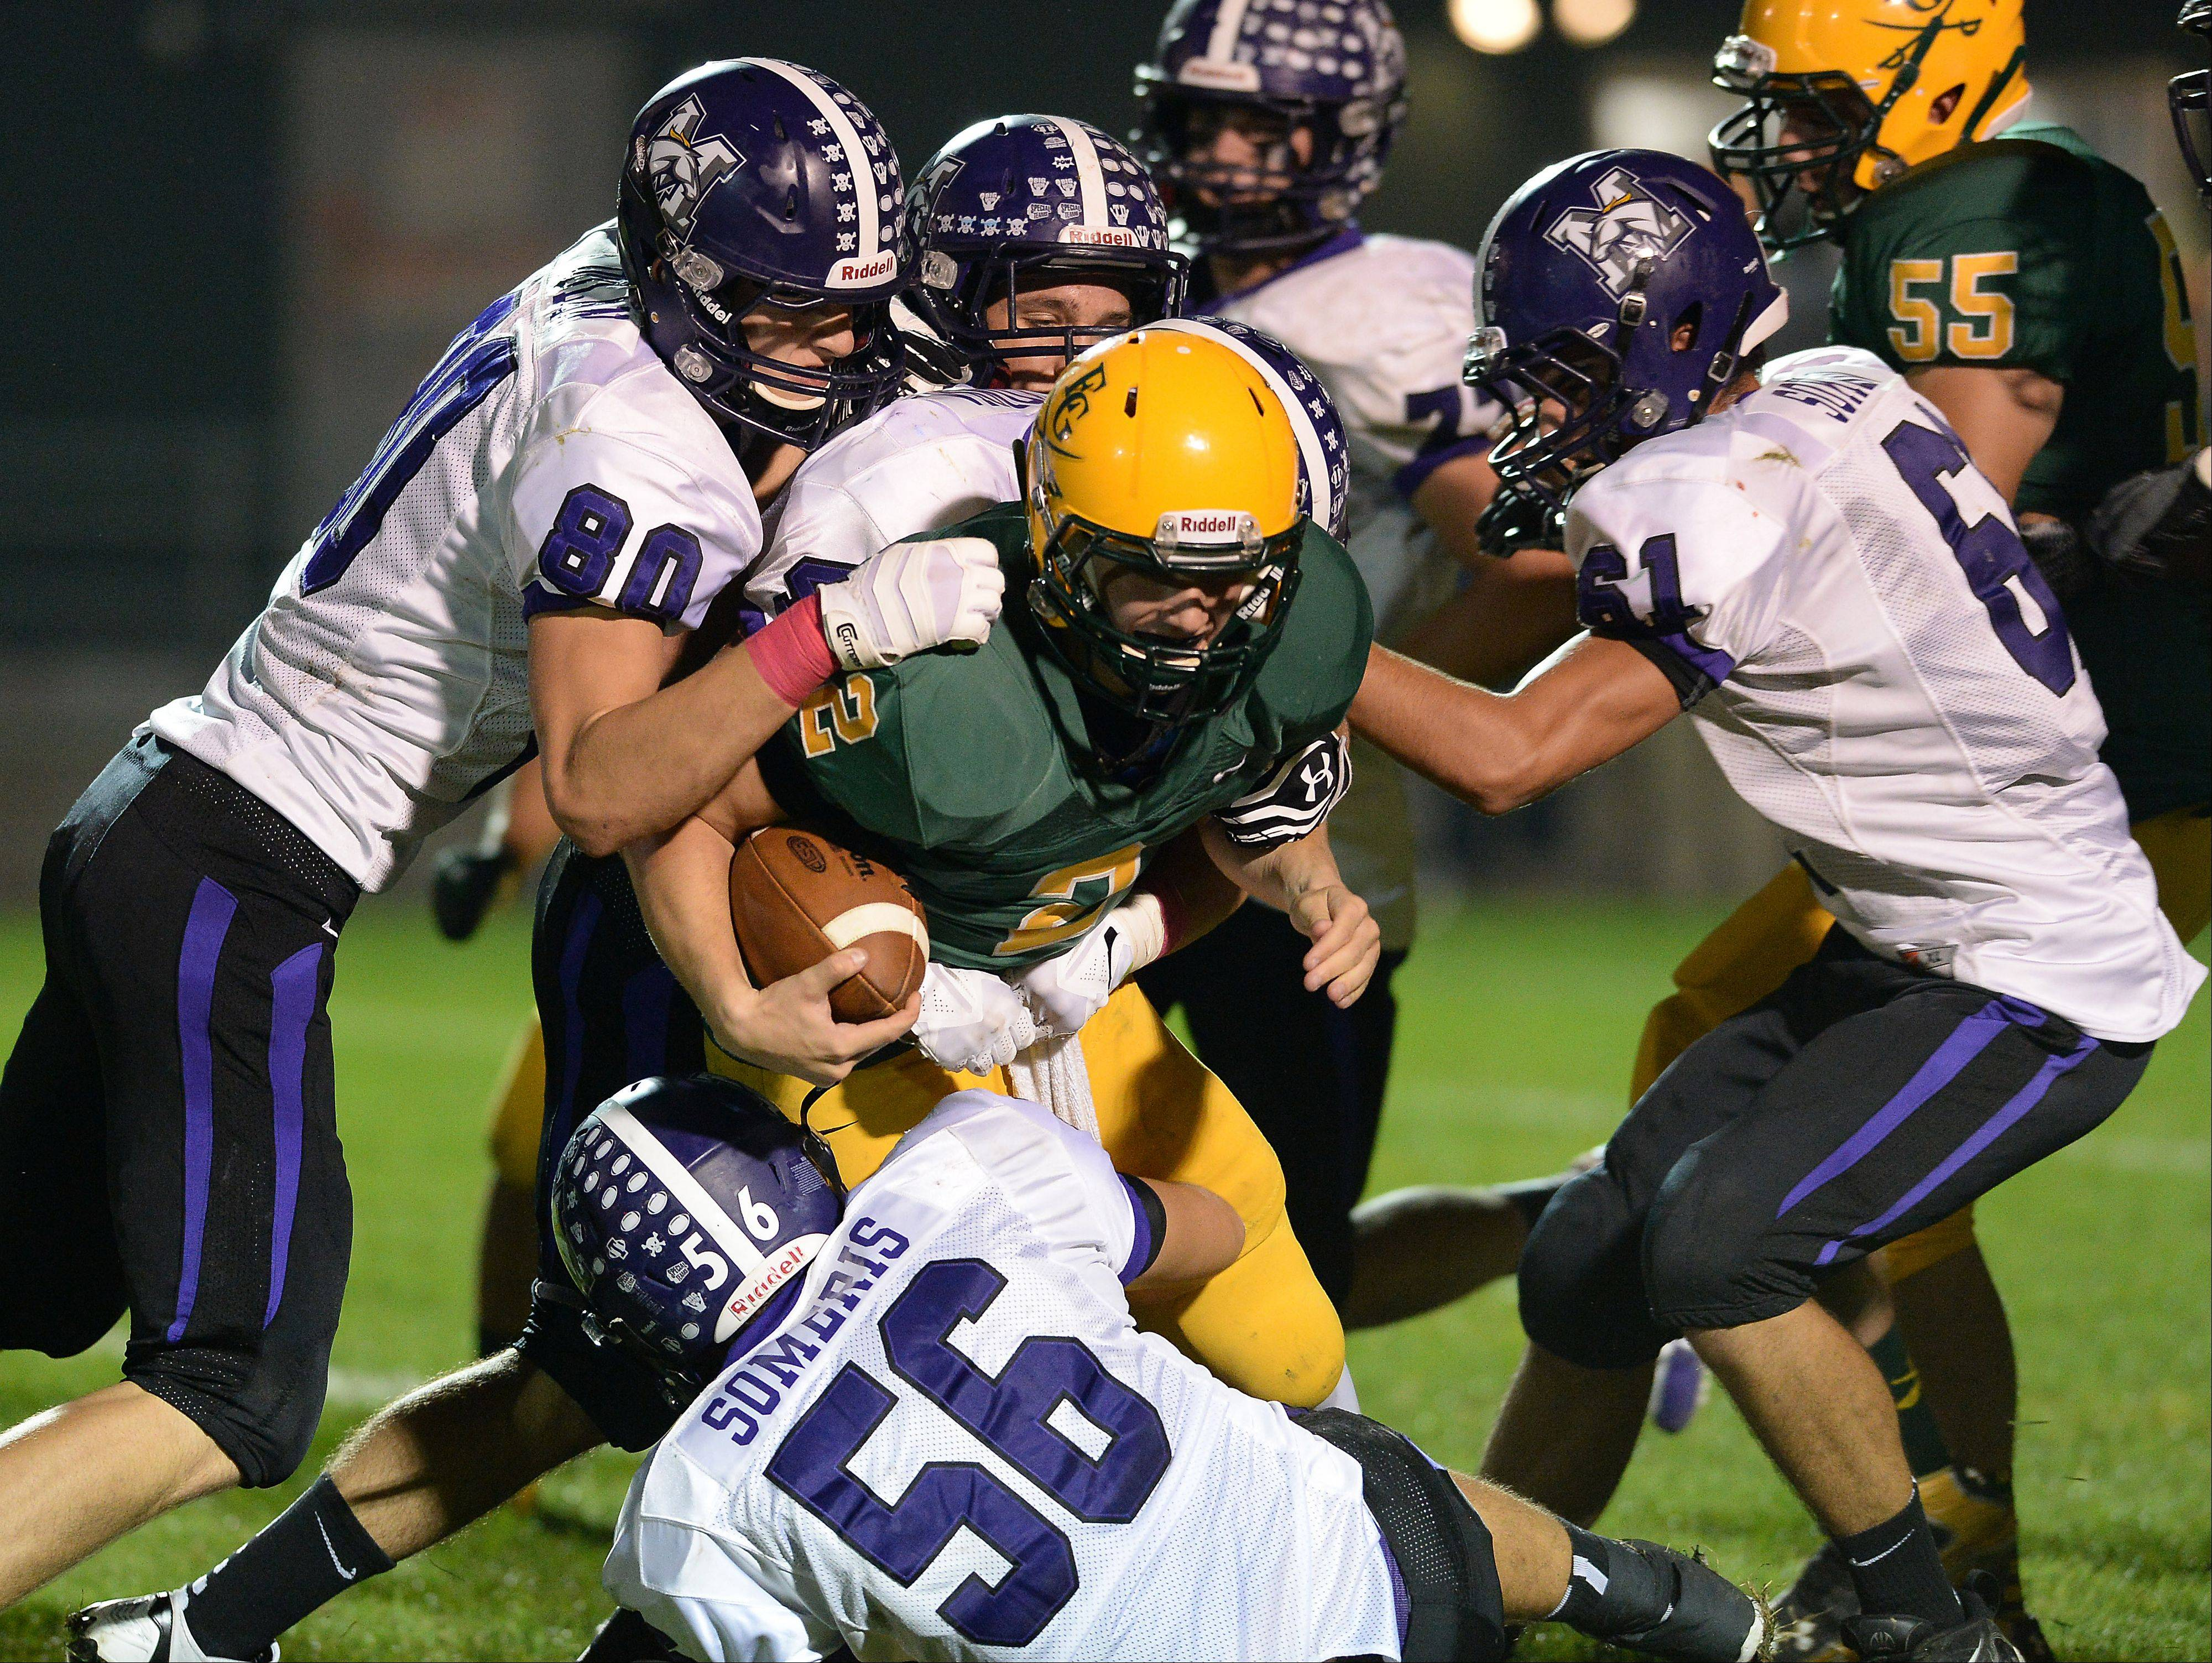 Elk Grove's Adam O'Malley goes up against Rolling Meadows's Matt Dolan and the rest of the defense as he is tackled in the second quarter.